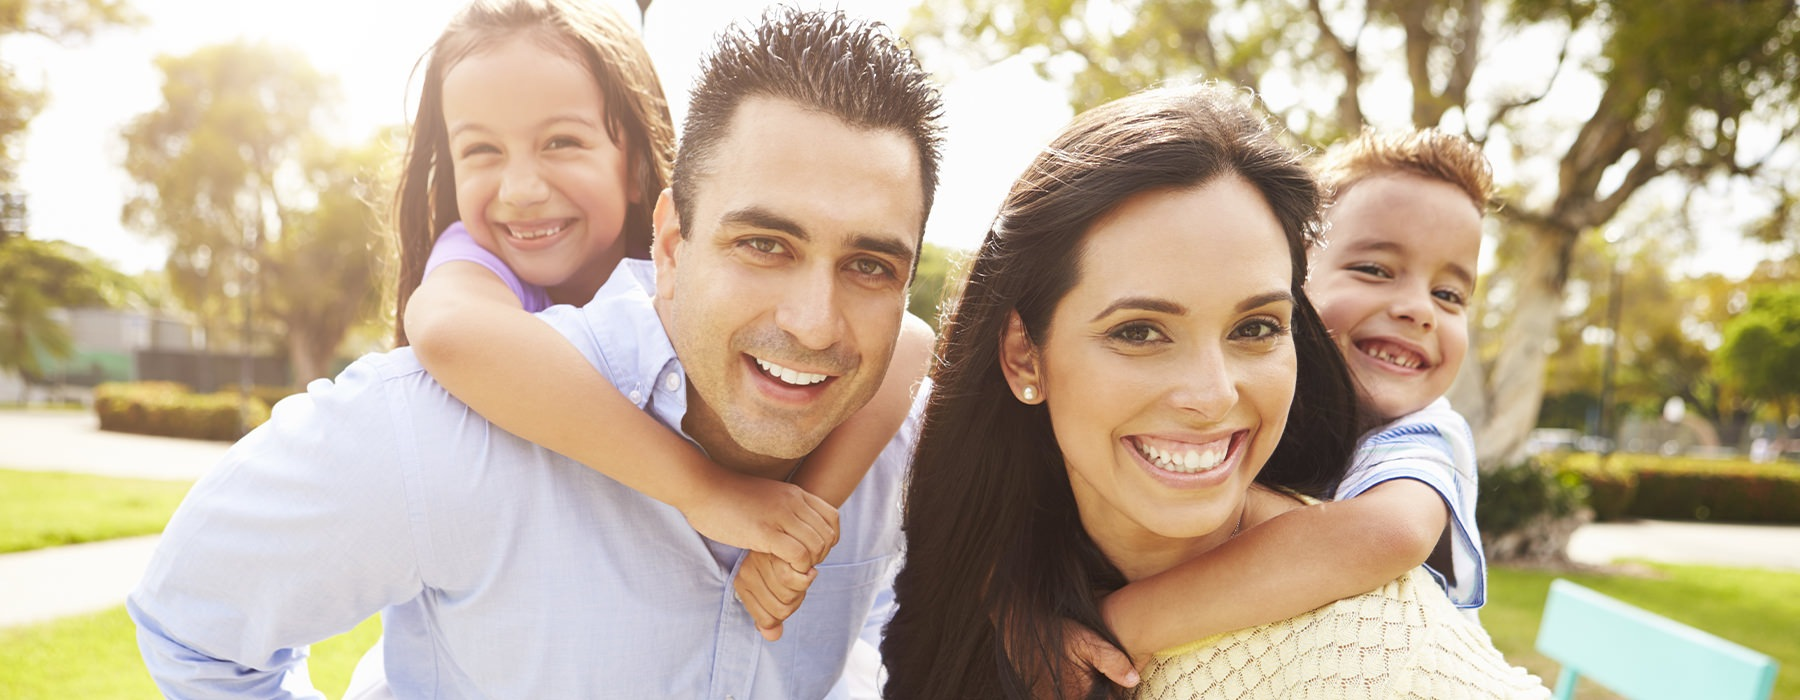 Family of four outside smiling